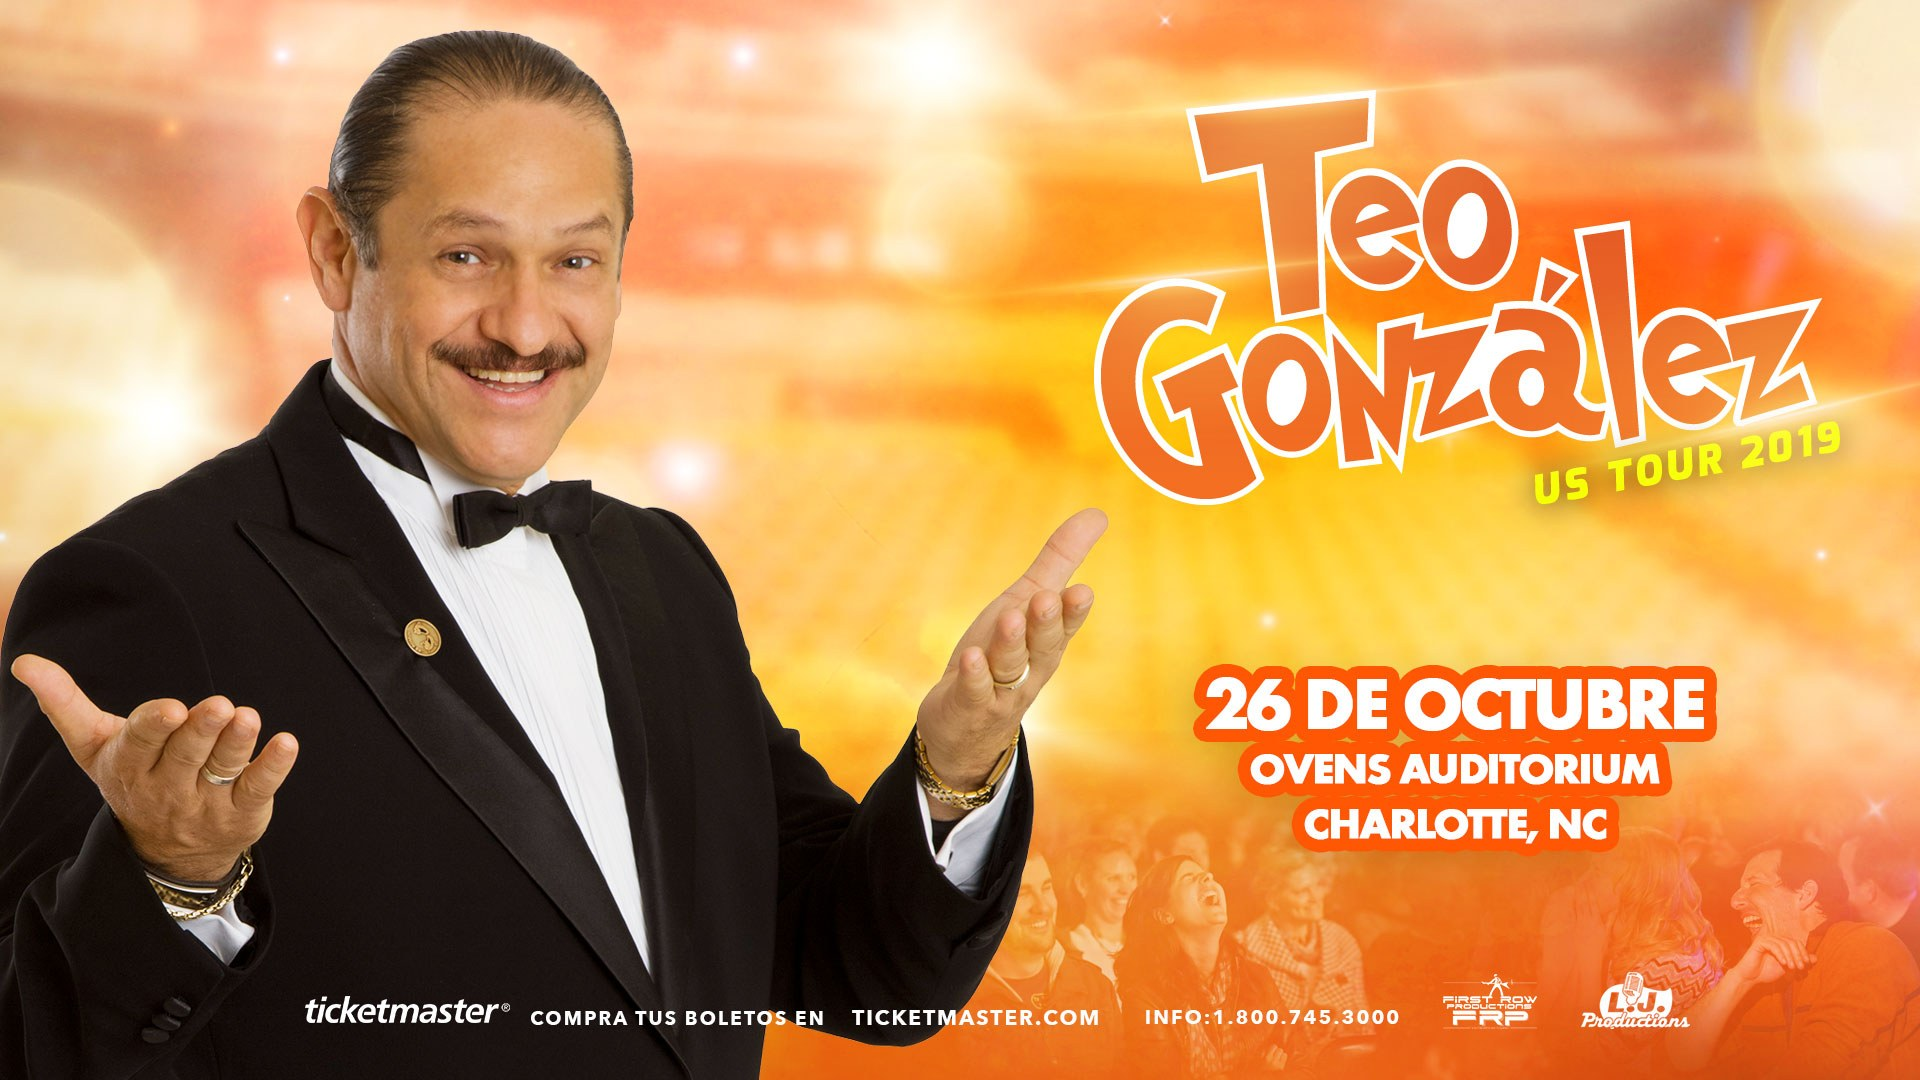 Illusion Touring & First Row Presents Teo Gonzalez